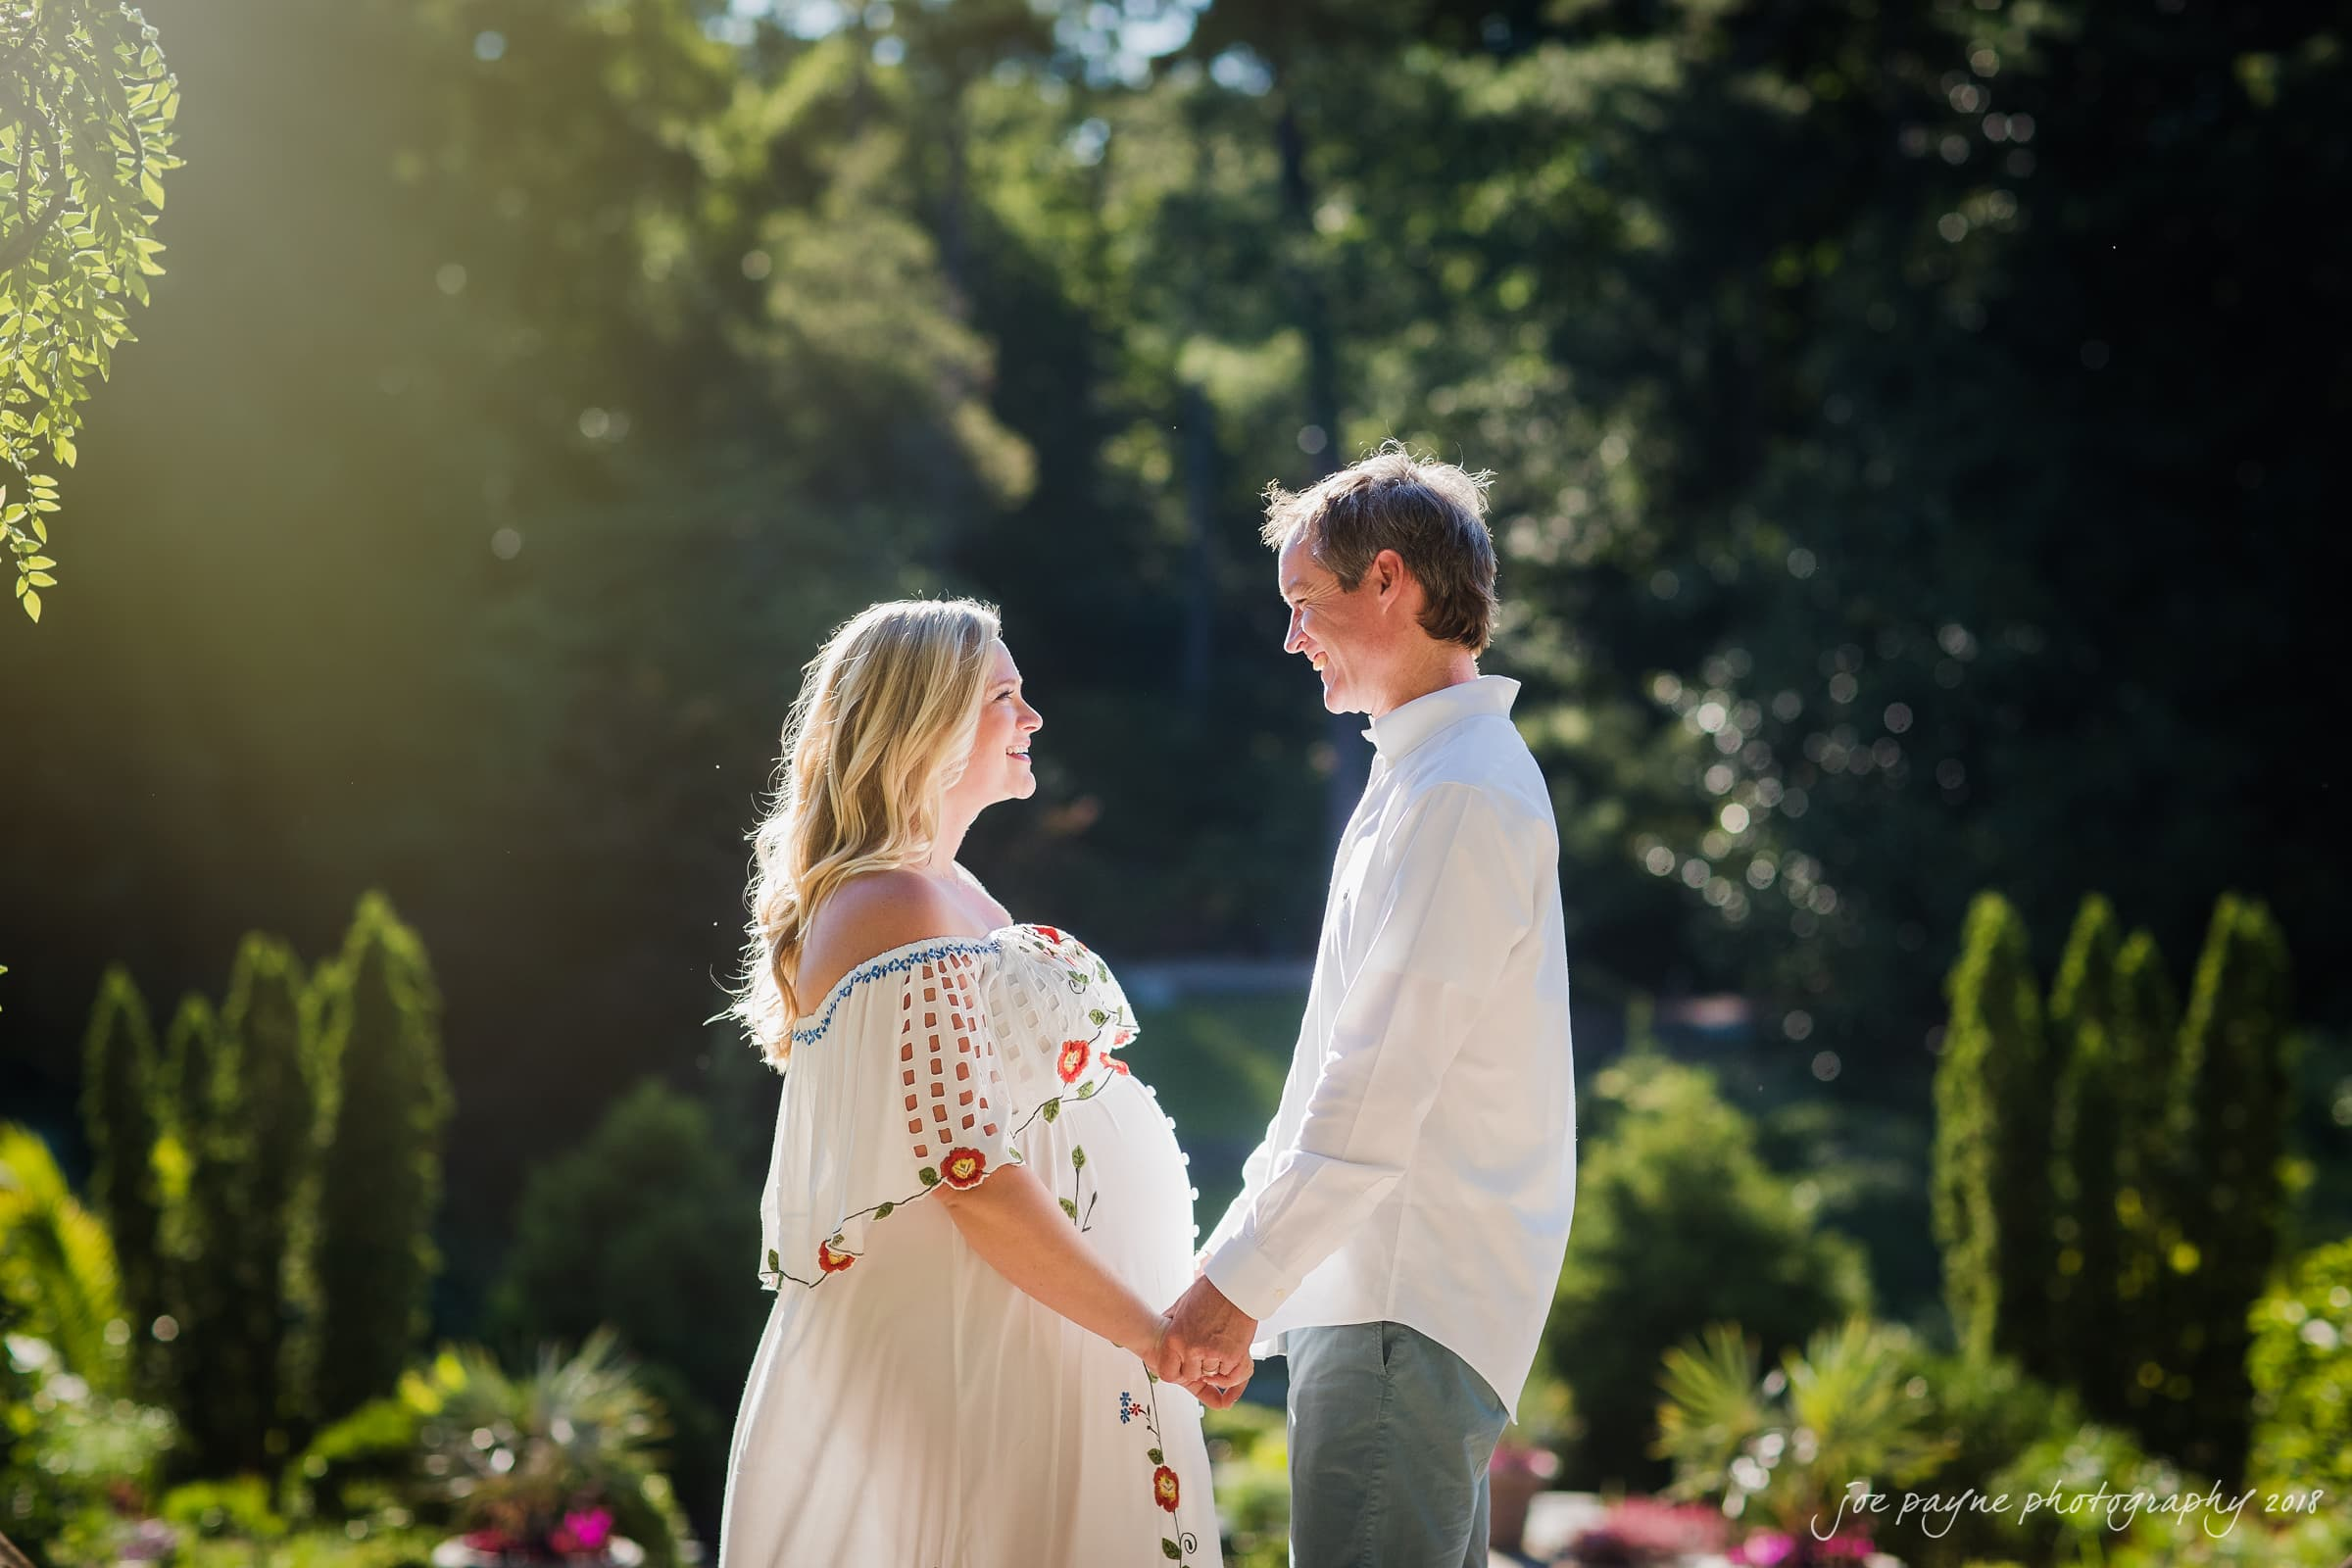 aleigh-Maternity-Photographer-Hallie-Cullen-8 duke gardens maternity session - hallie & cullen